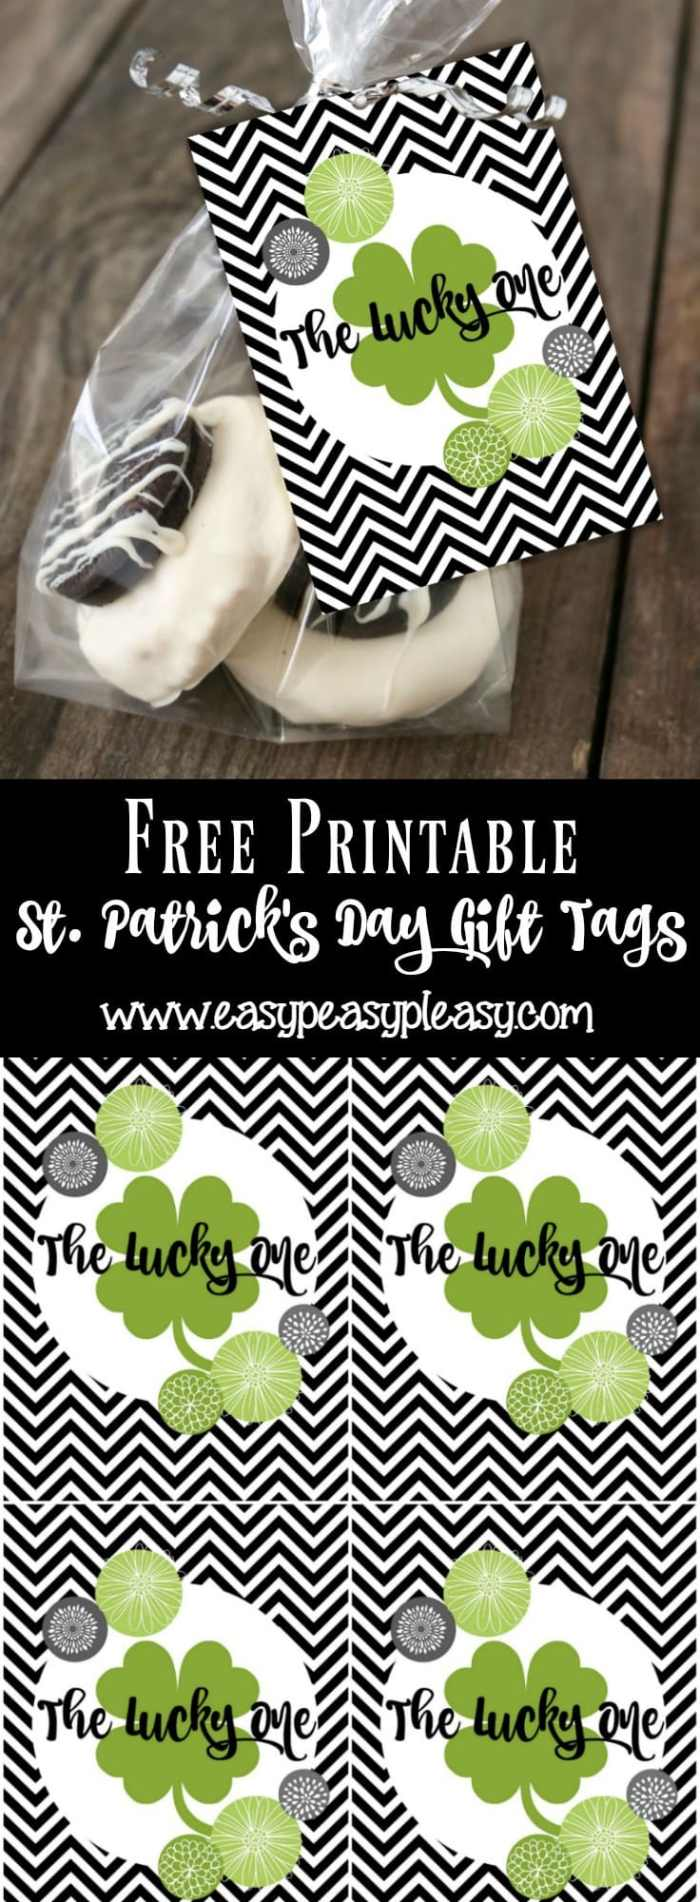 Free Printable St Patricks Day Gift Tags perfect for homemade treats and store bought sweets.